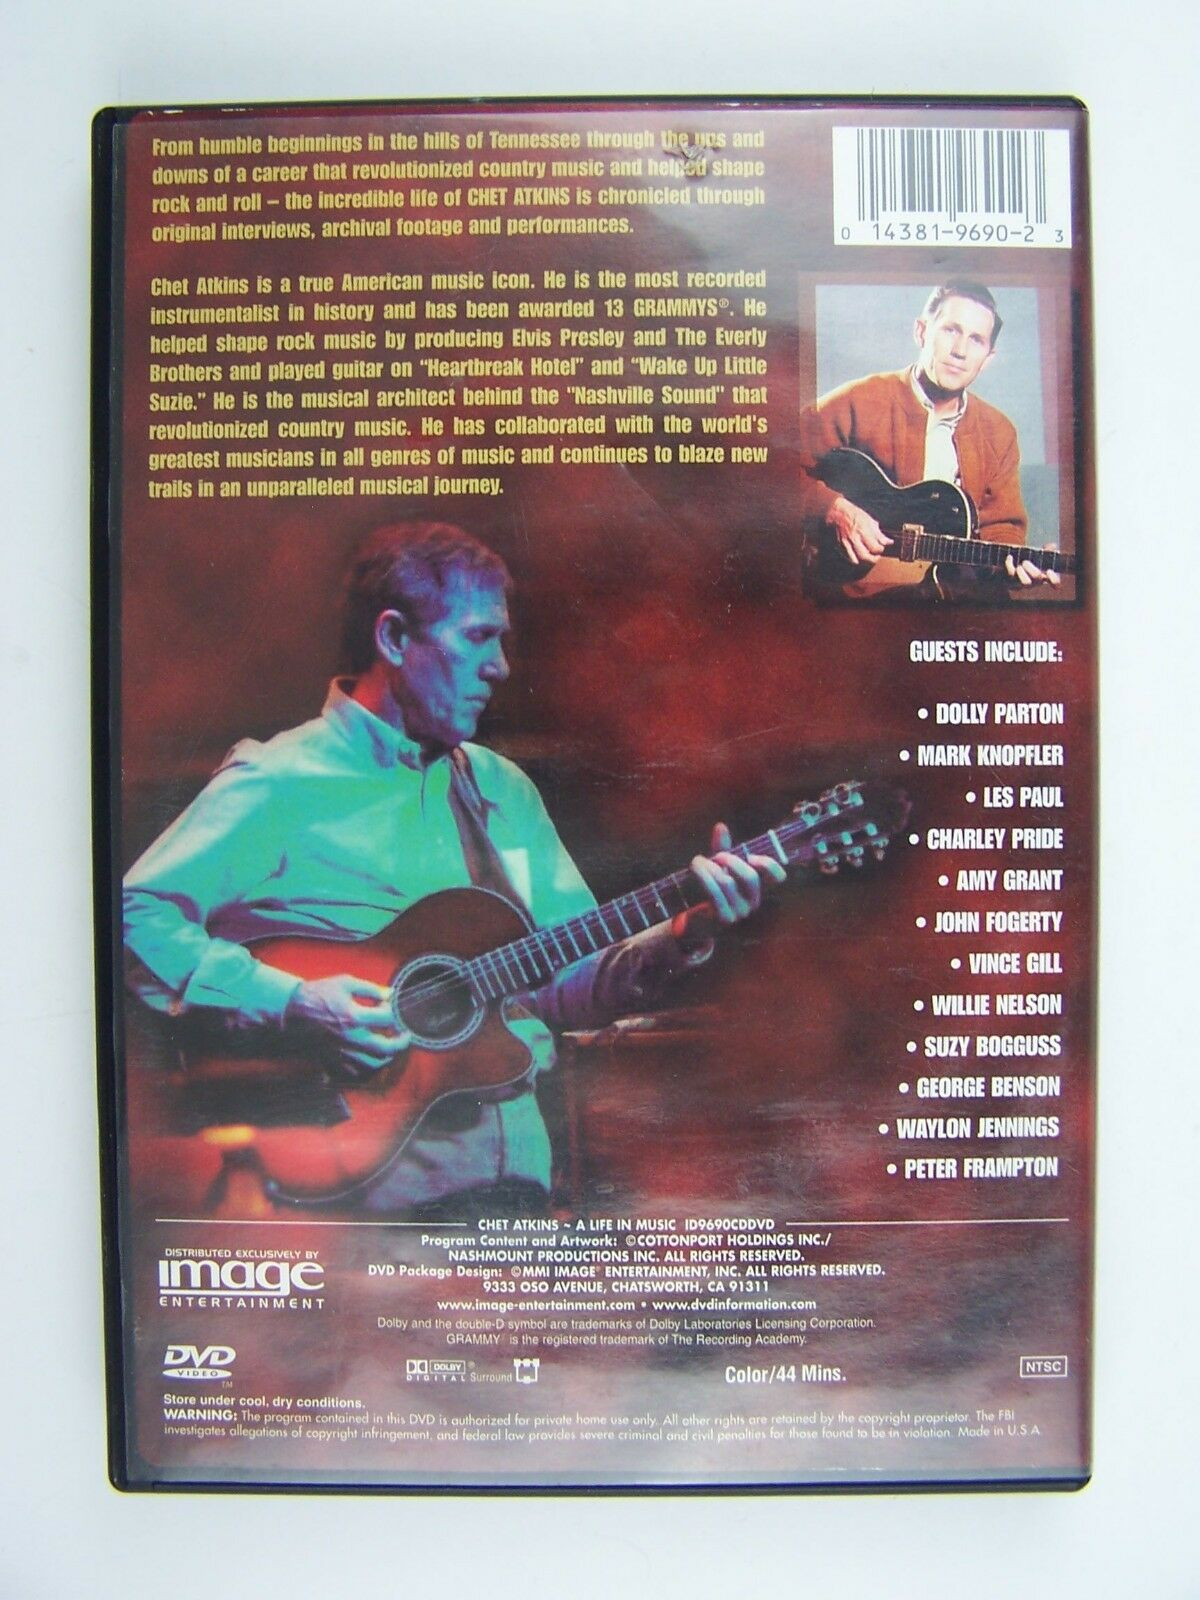 Chet Atkins - A Life in Music DVD 14381969023